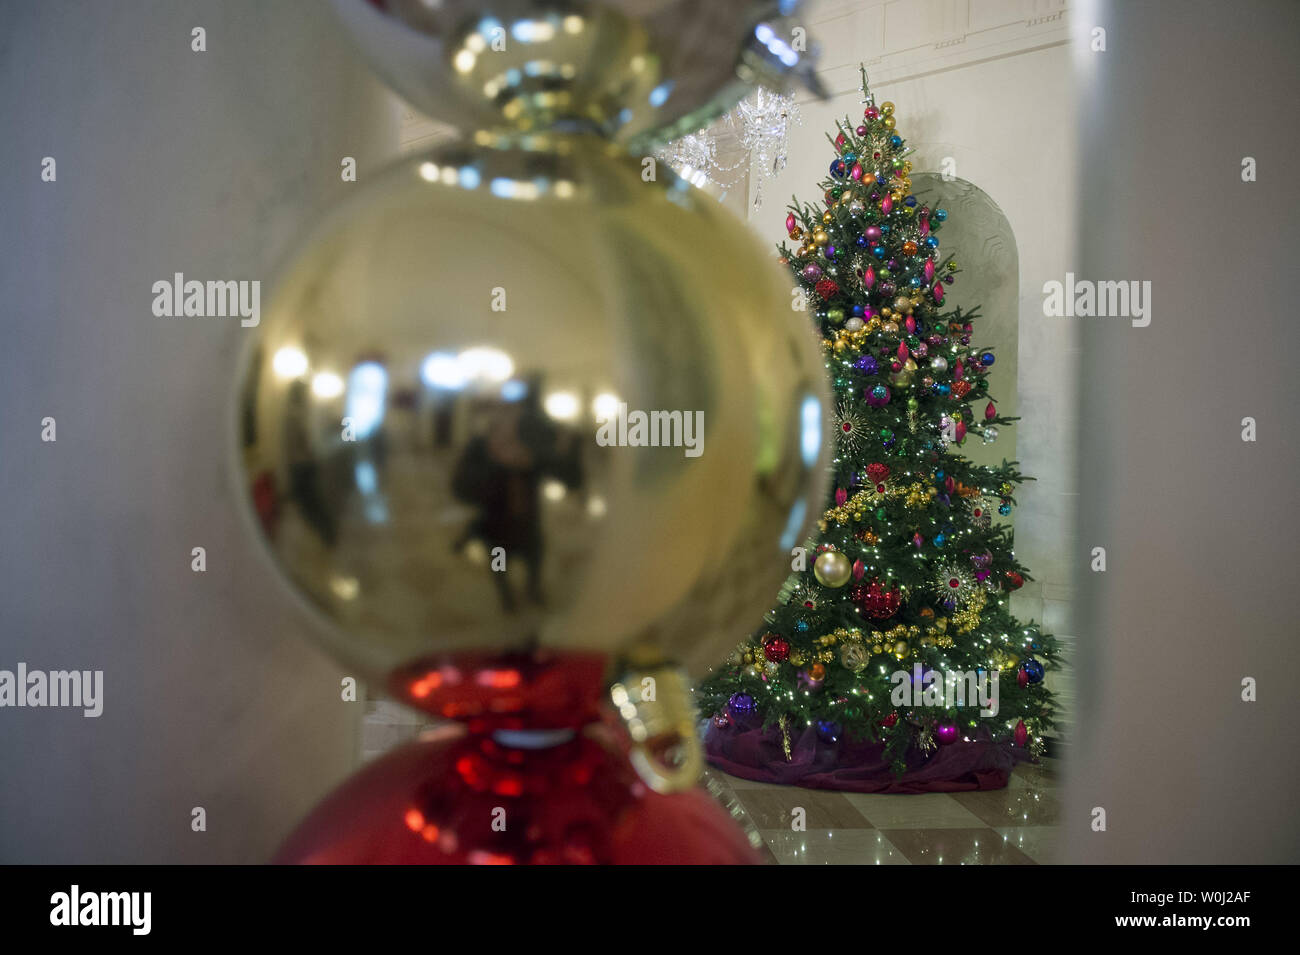 Decorations are seen in the Grand Foyer during a holiday tour at the White House in Washington, D.C. on December 2, 2015. This year's team is 'A Timeless Tradition, and reflects long-held traditions cherished across America and commemorates extradorinaiy moments that help shaped the county. Photo by Kevin Dietsch/UPI. - Stock Image